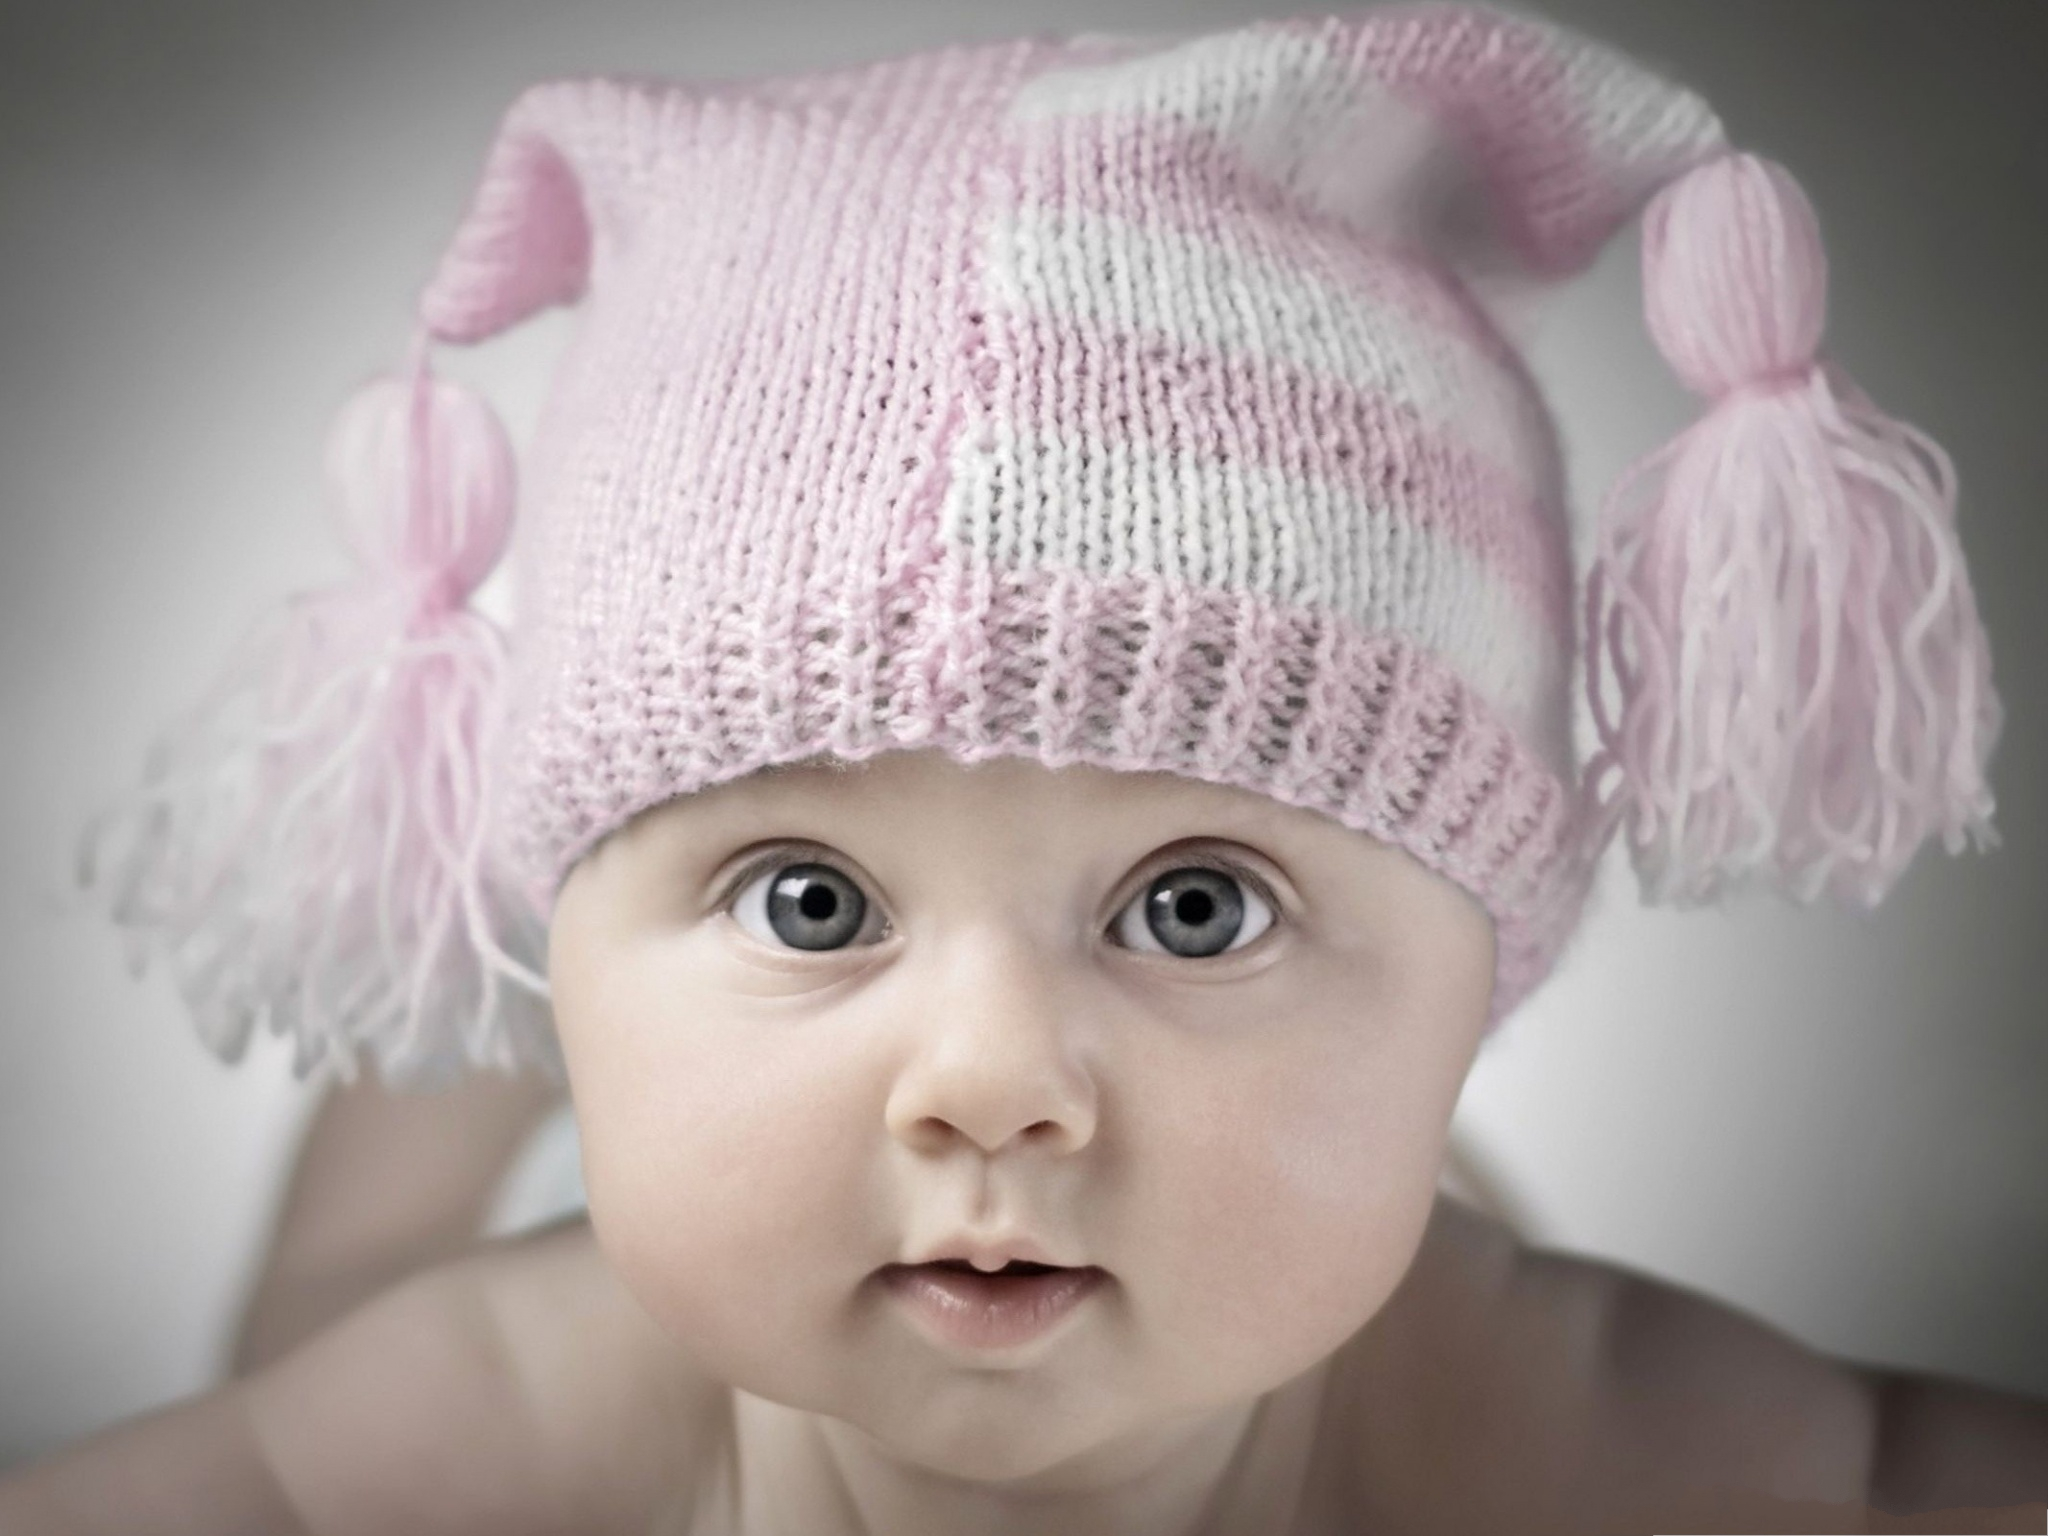 click to free download the wallpaper--Adorable Baby Photography, Baby in Pink Hat, Wide Open Eyes, Curious Facial Expression 2048X1536 free wallpaper download